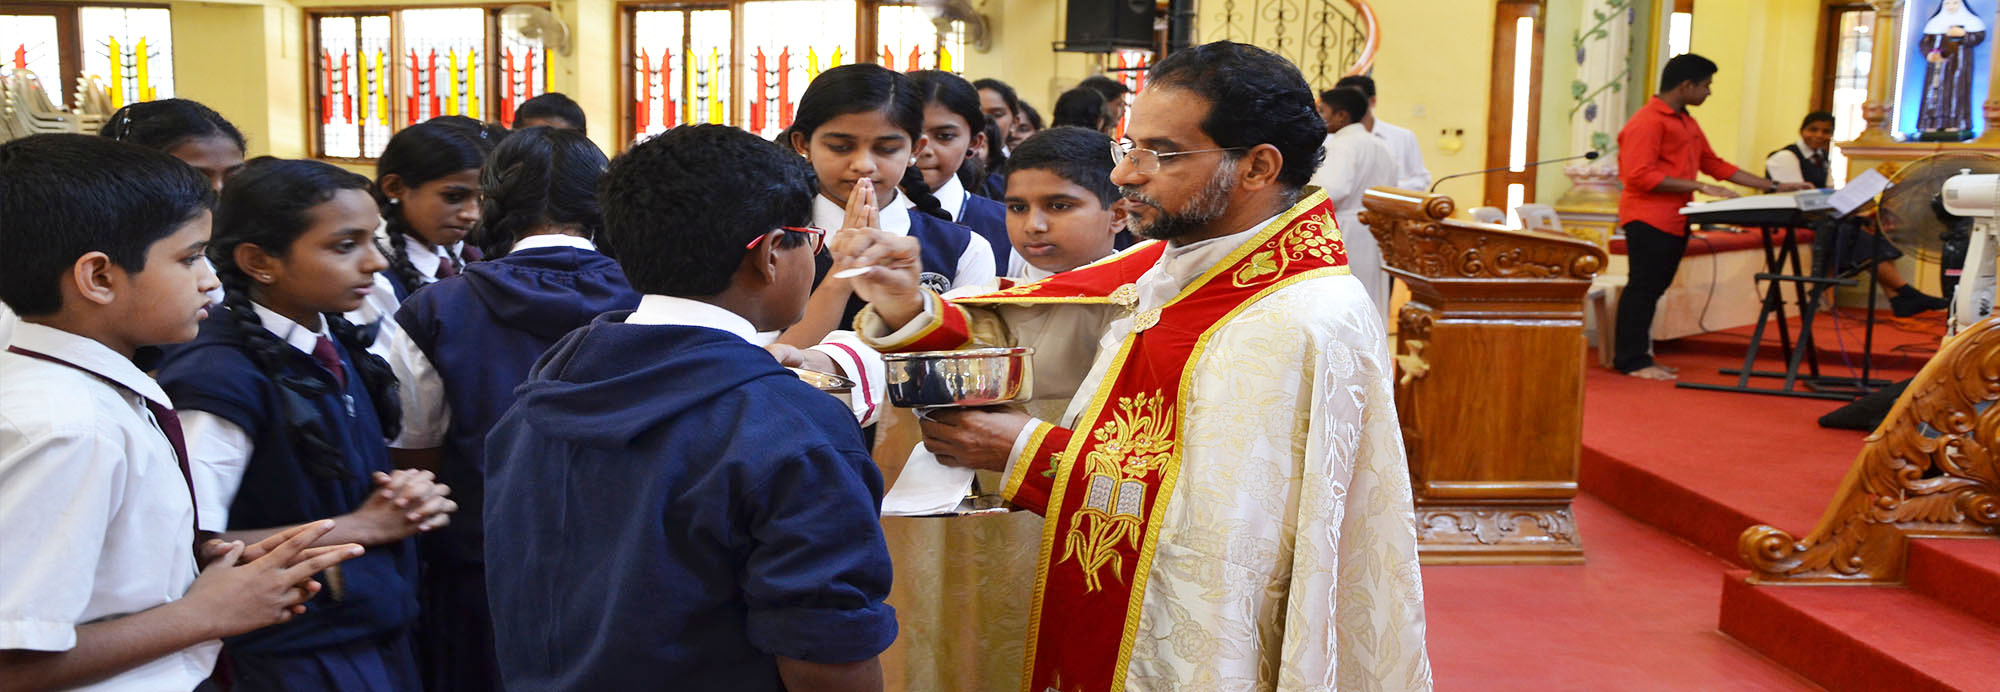 During the homily Rev. Fr. George inspired the students with his message how to experience God`s presence in students life and to live a life of love through the gifts of Holy Spirit.